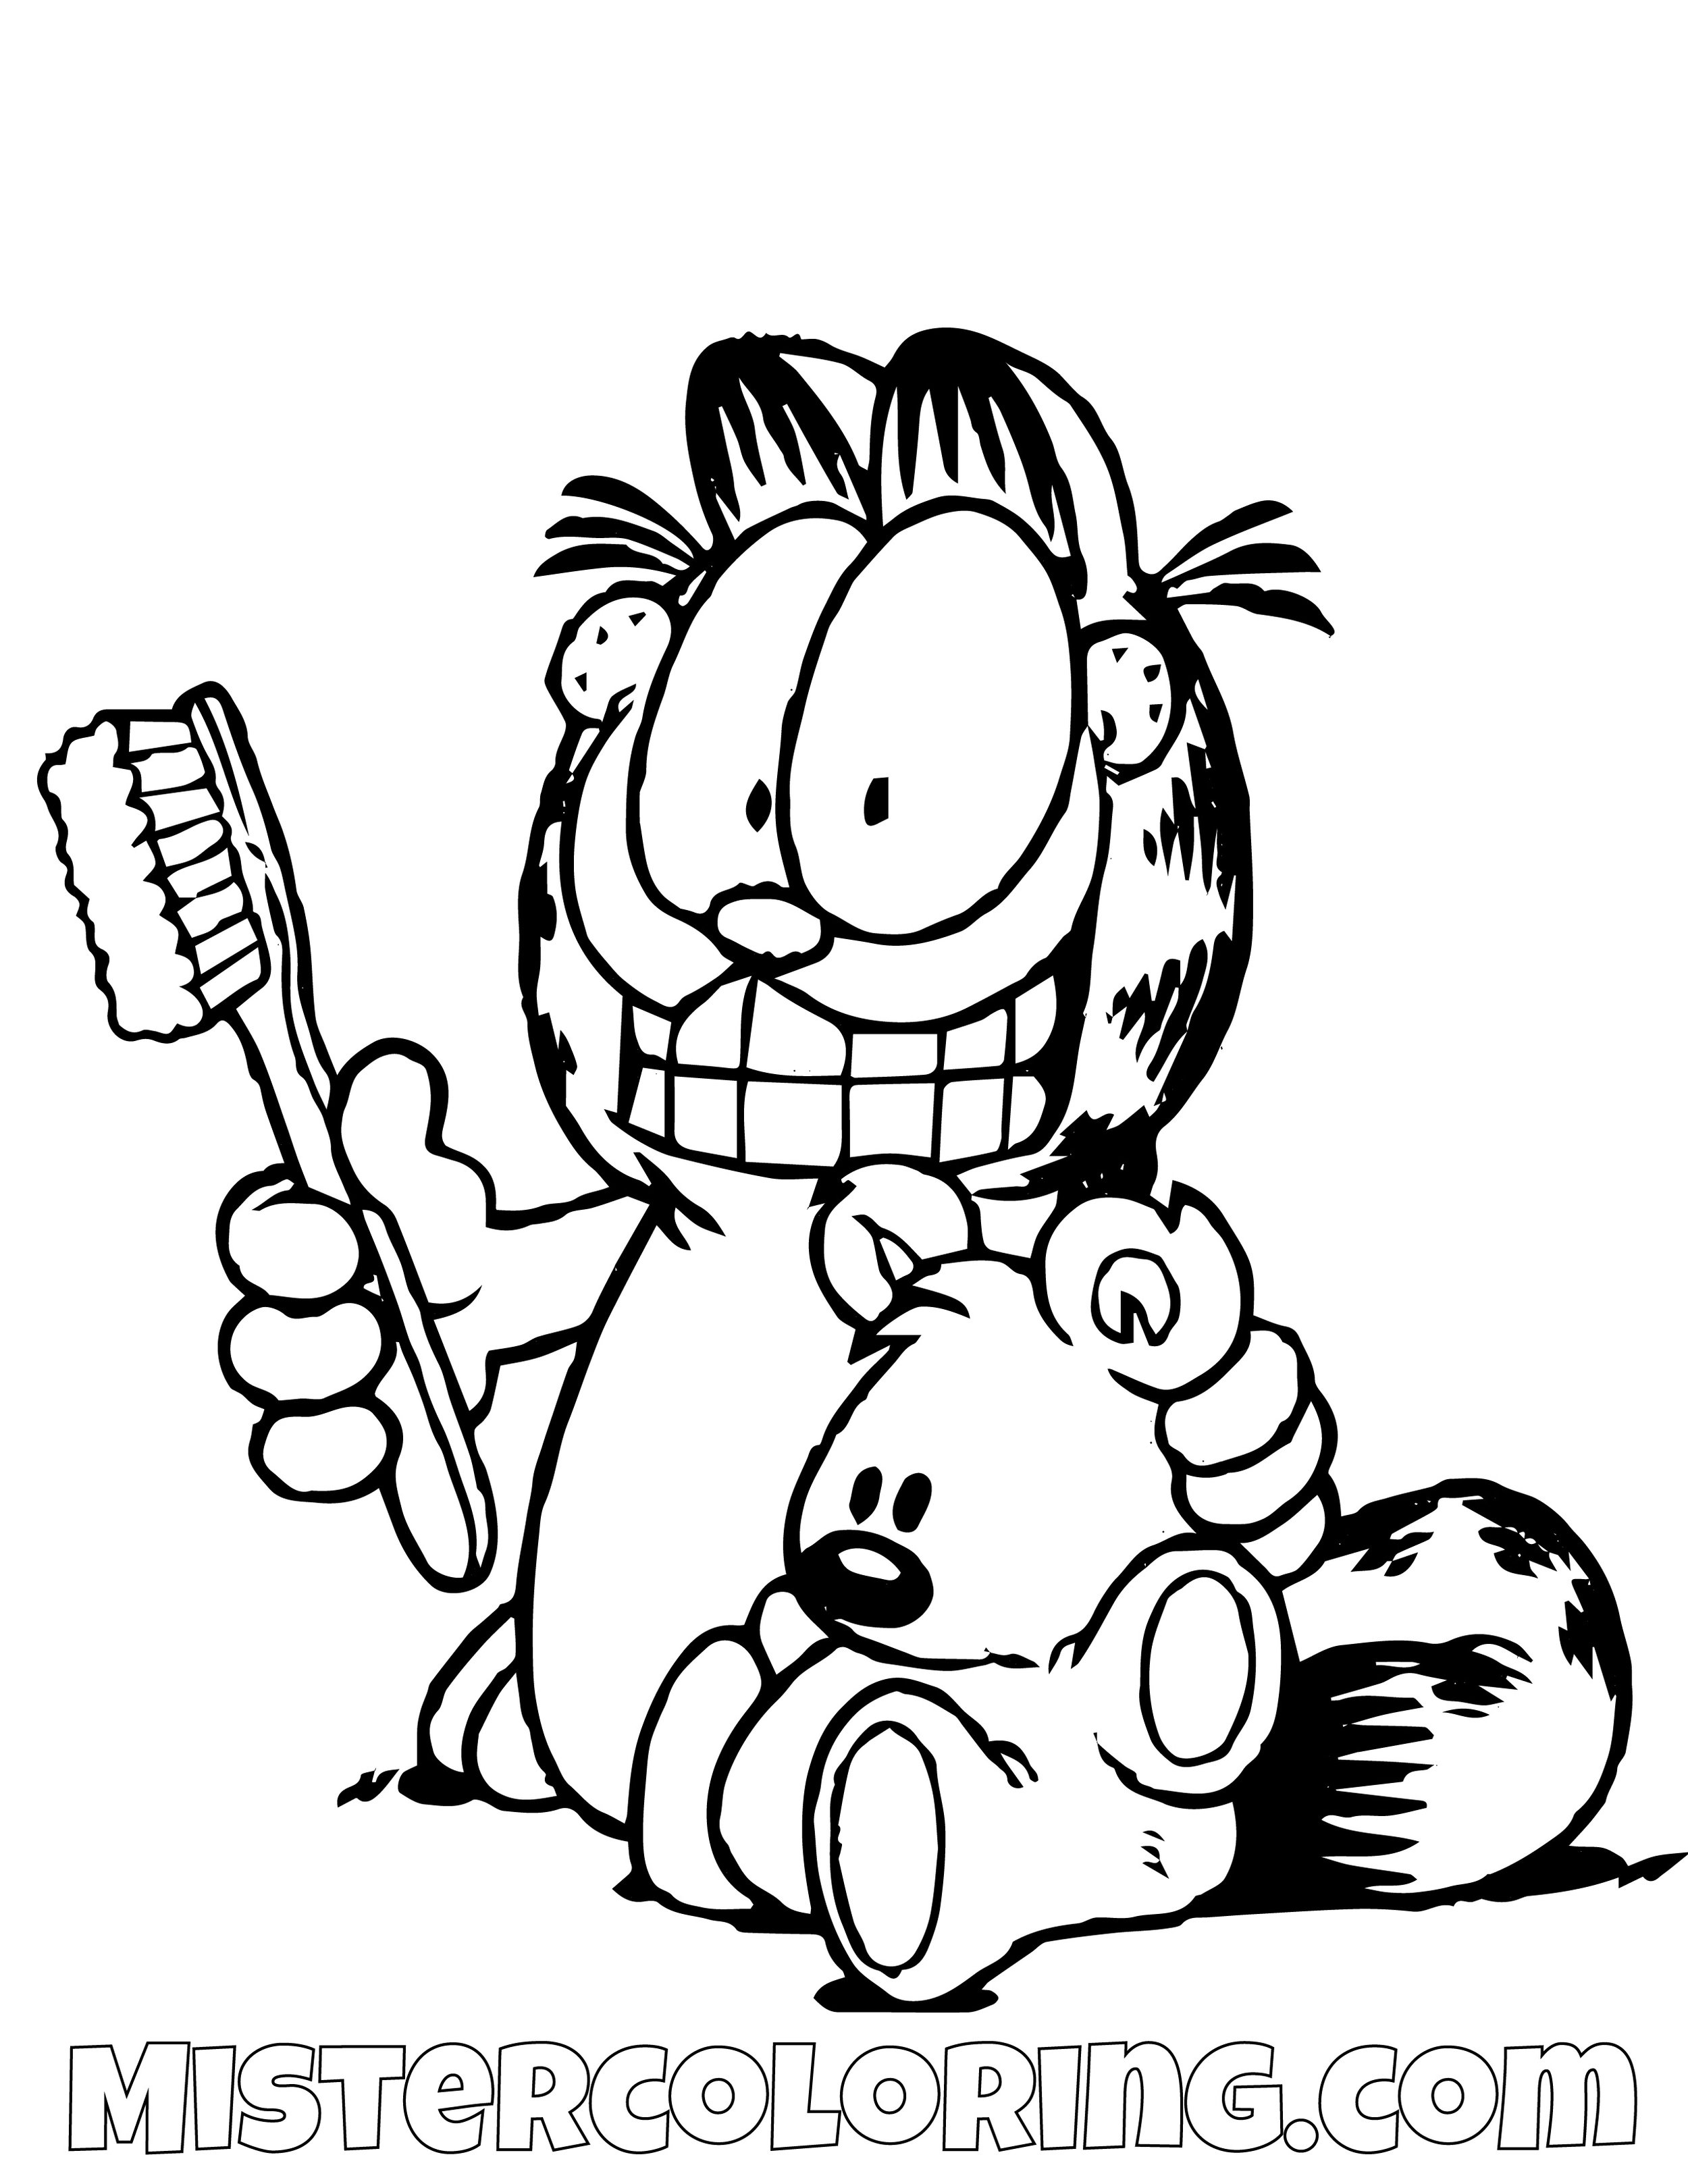 Garfield With A Toothbrush And Spooky Coloring Page